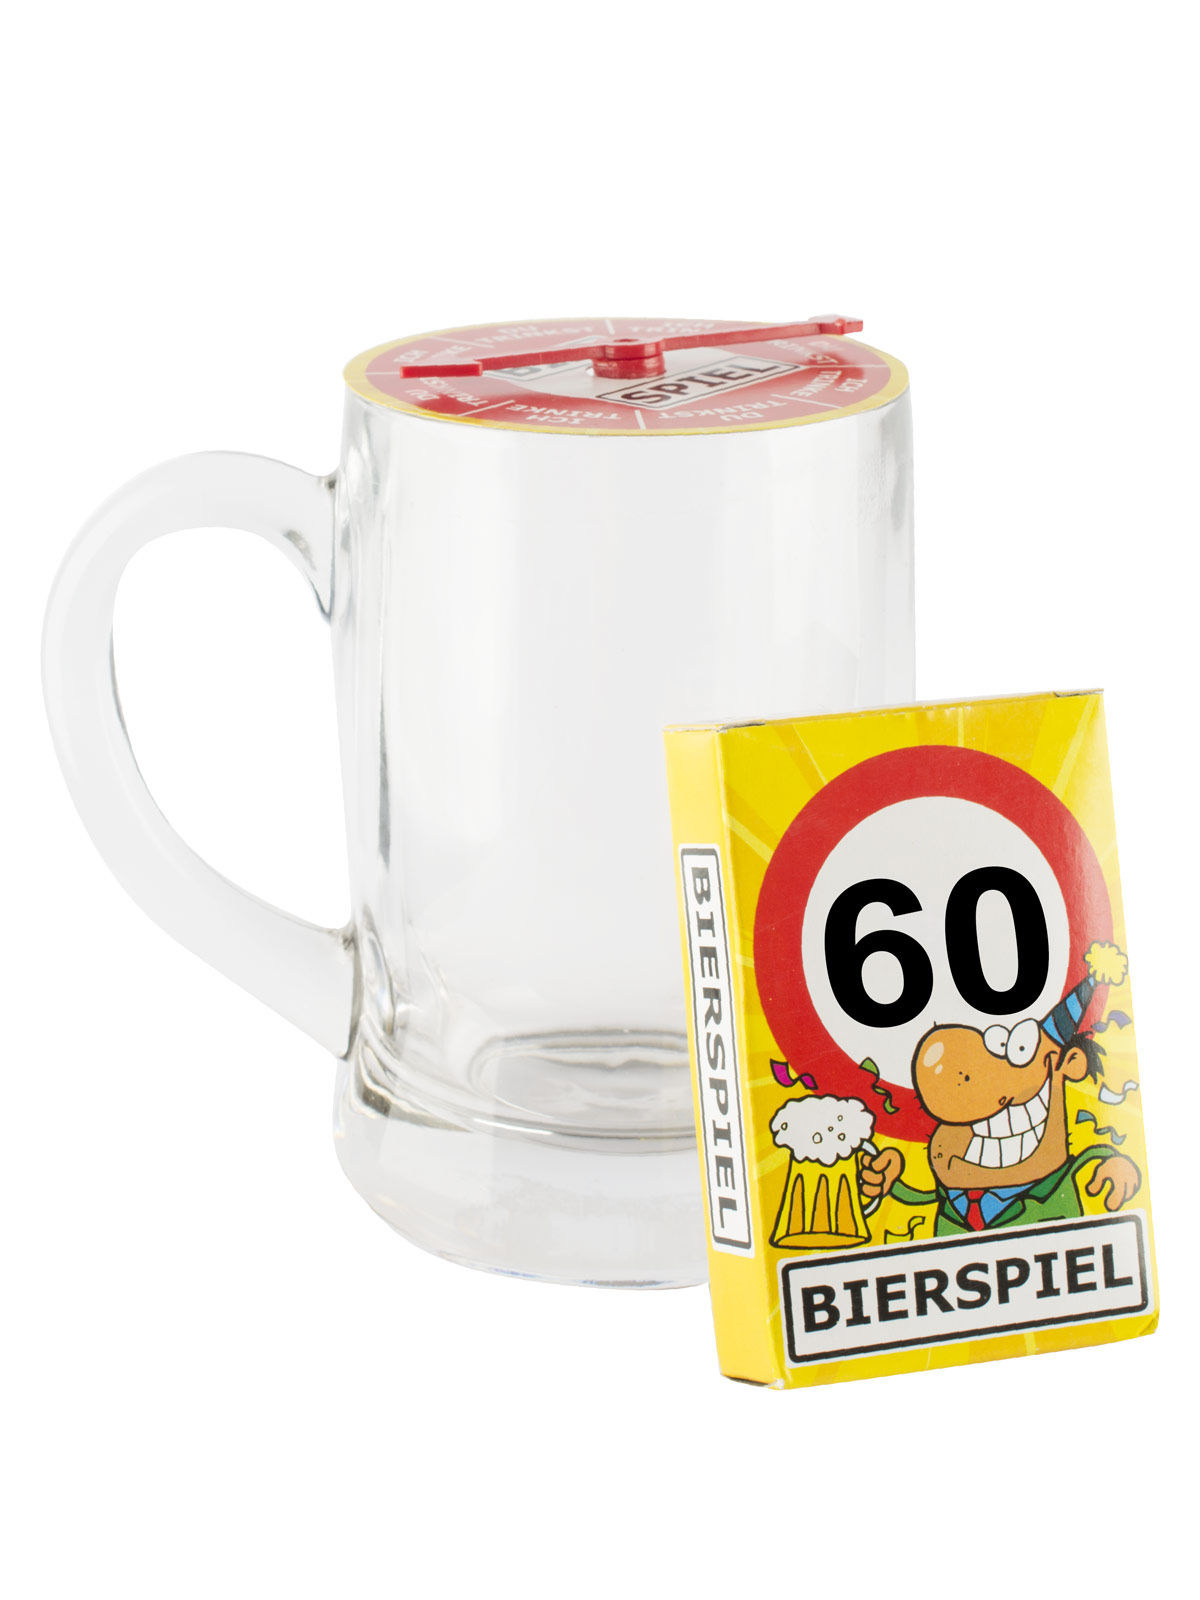 60 geburtstag bier spiel mit bierglas transparent bunt 500ml g nstige faschings partydeko. Black Bedroom Furniture Sets. Home Design Ideas